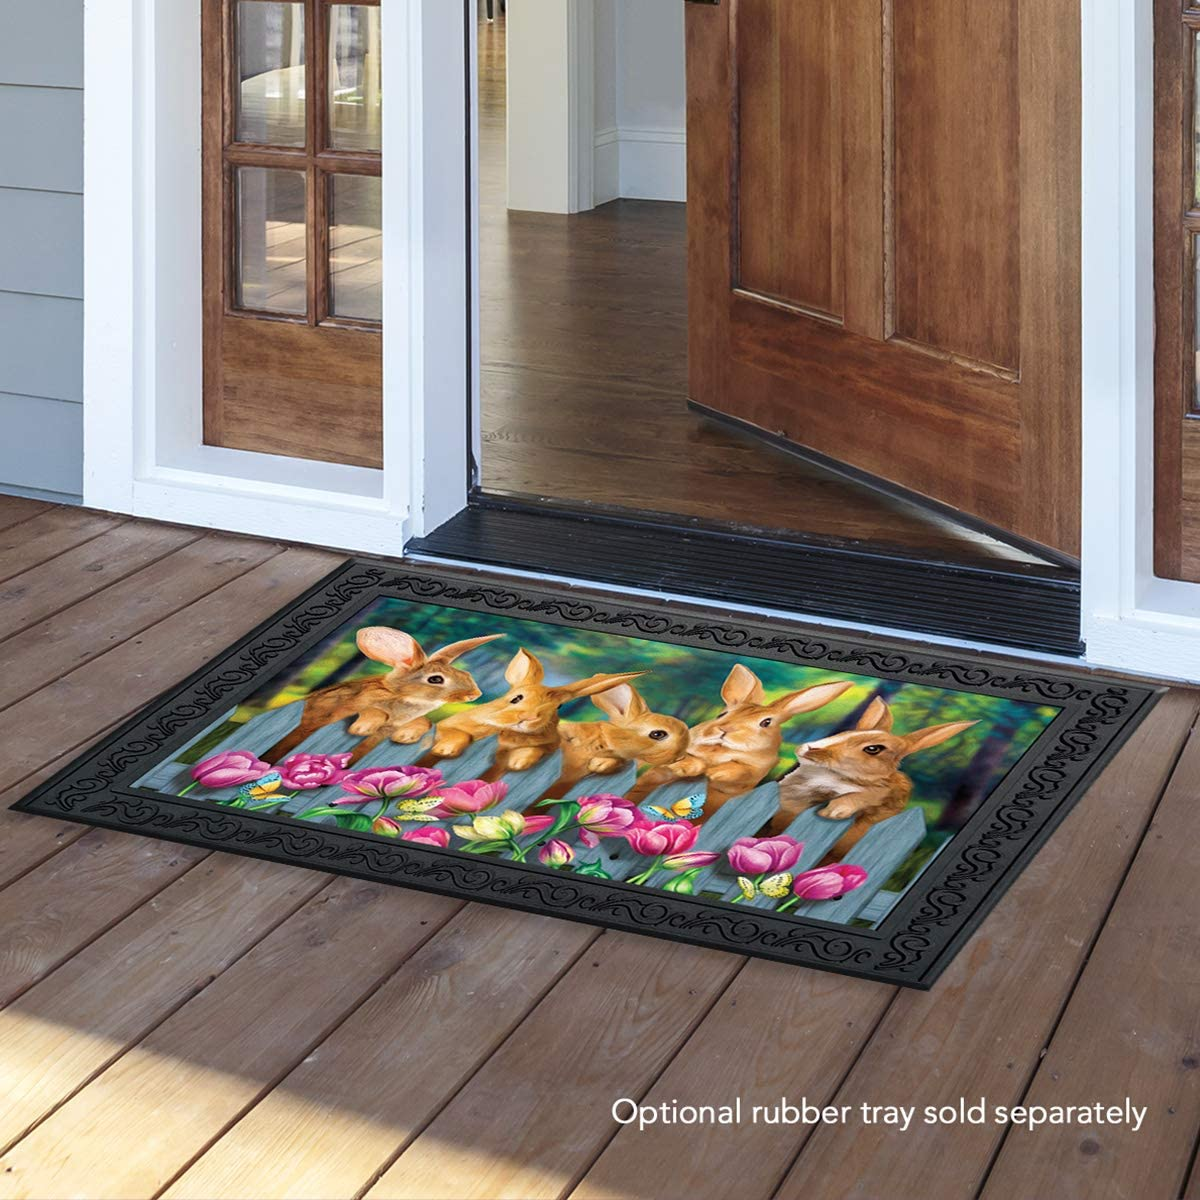 Briarwood Lane Garden Bunnies Spring Doormat Tulips Easter Rabbits Indoor Outdoor 18 x 30